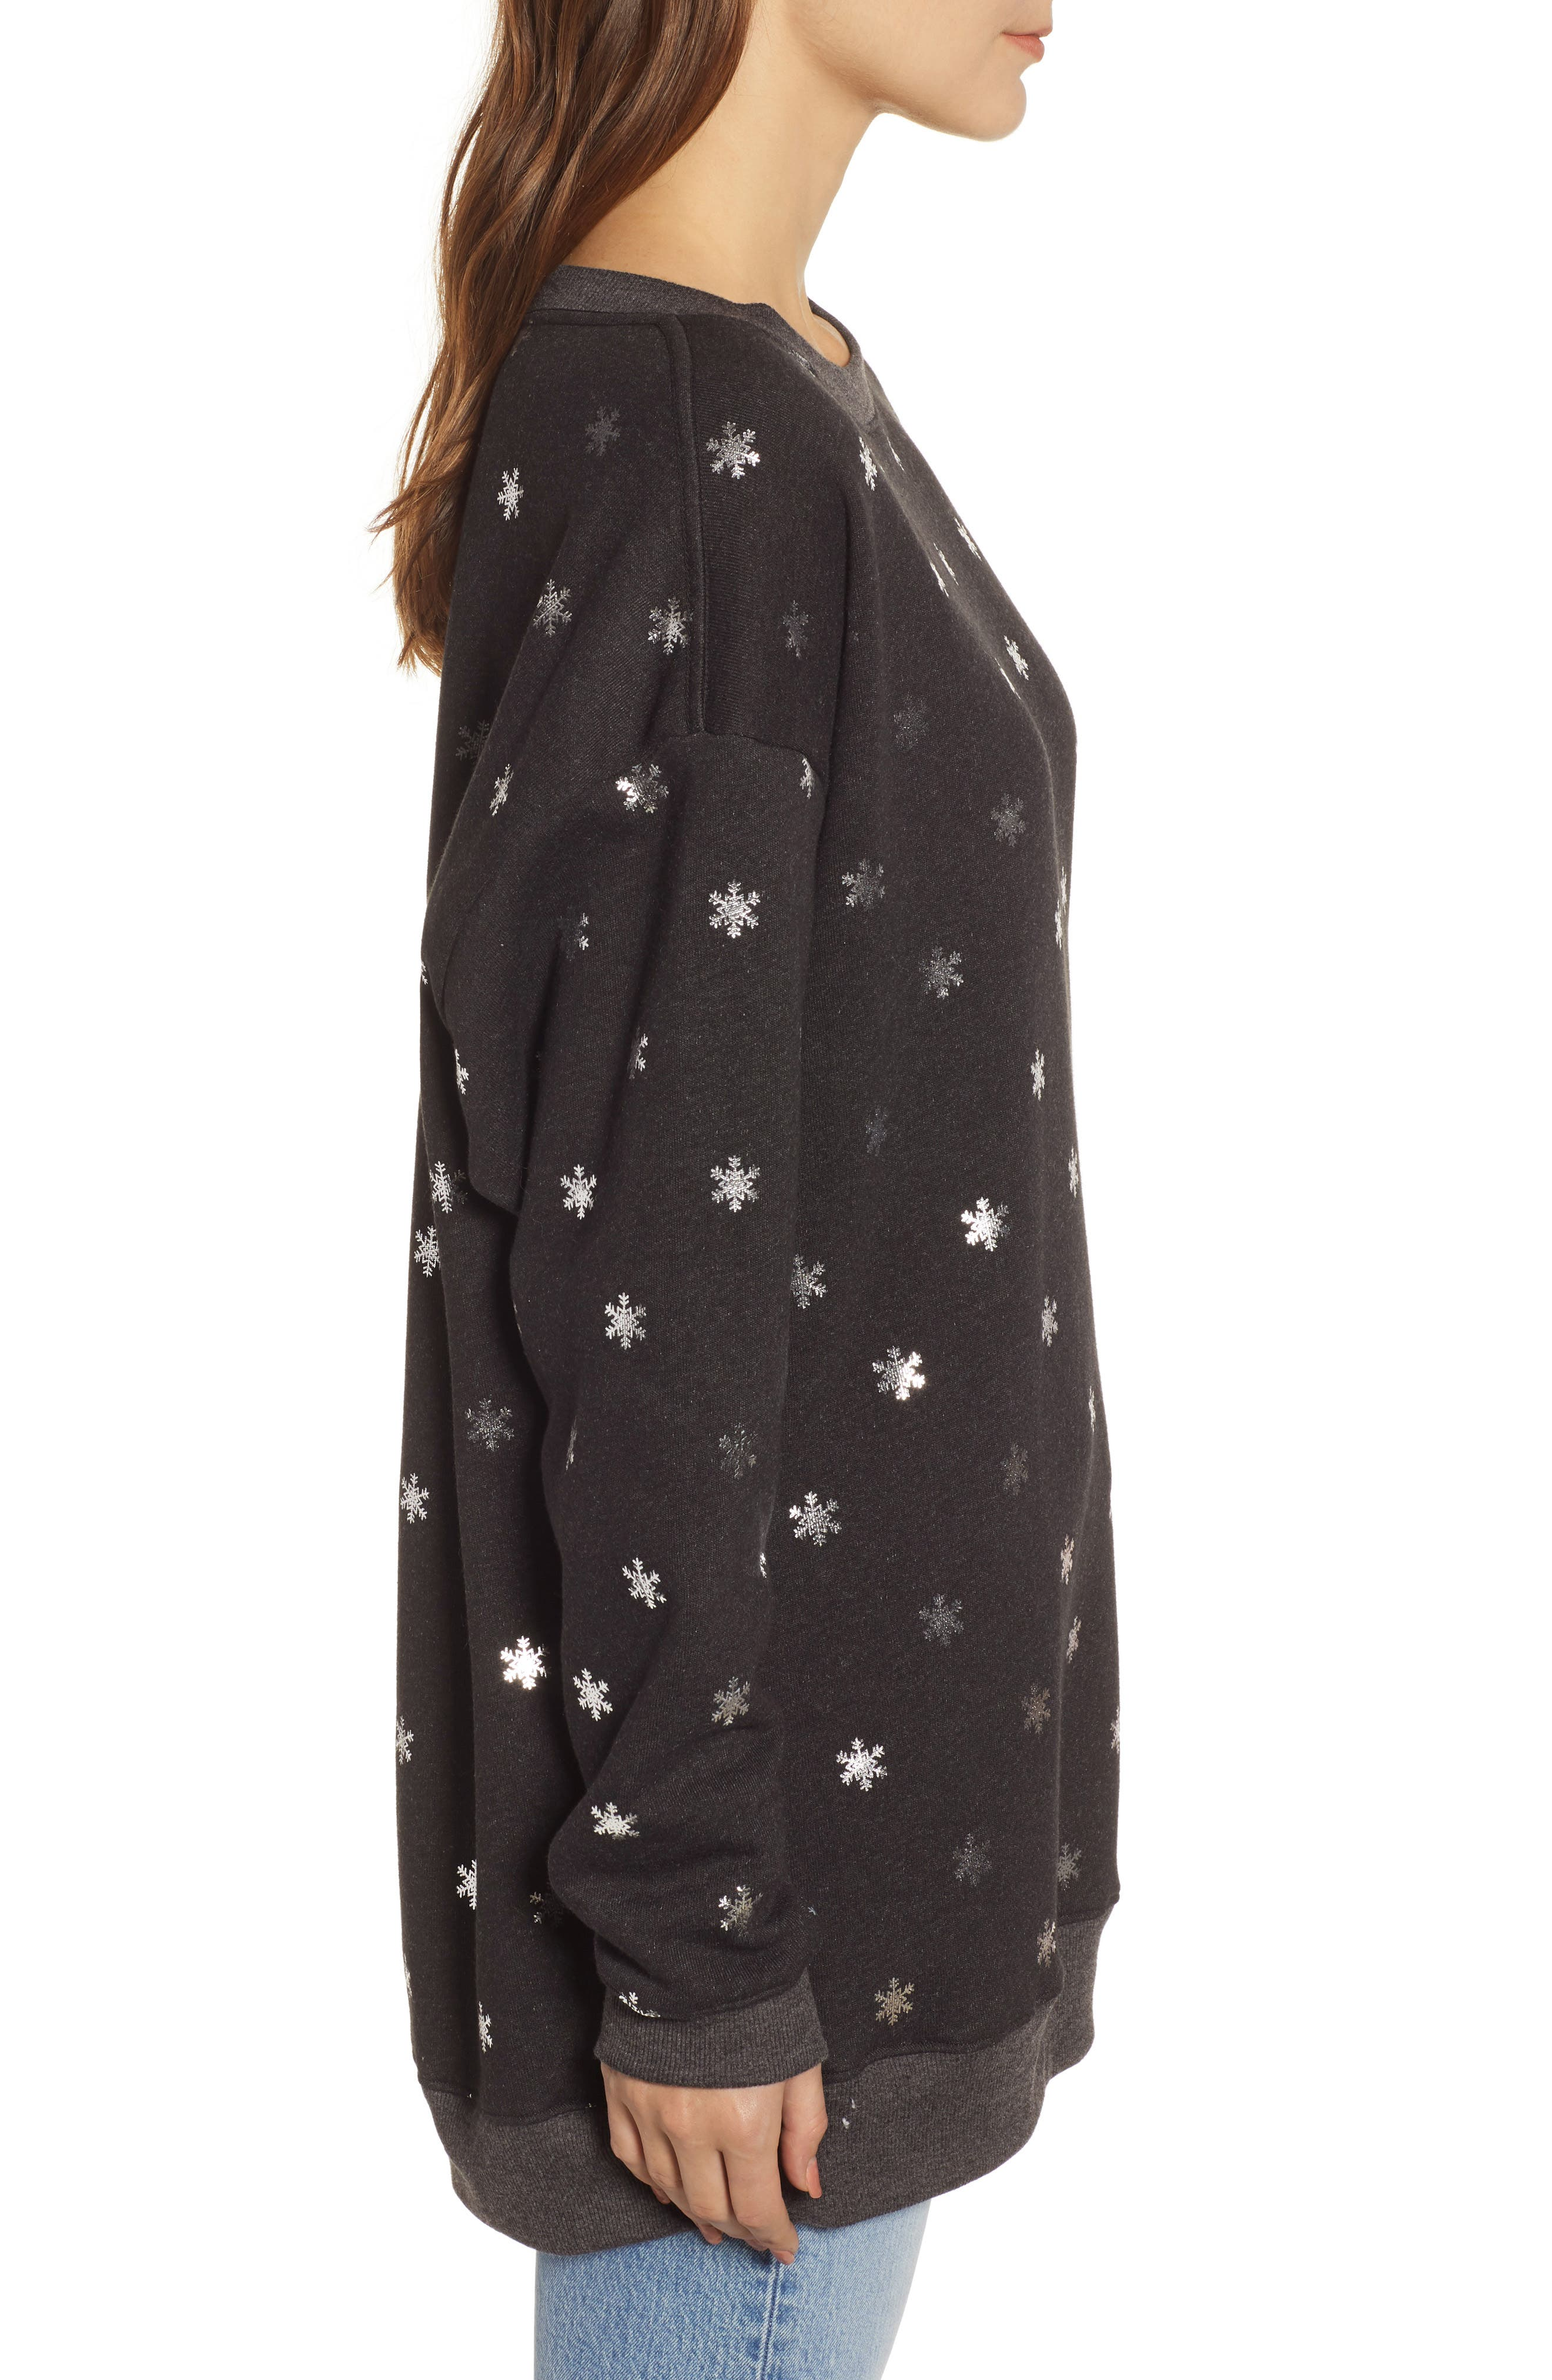 WILDFOX,                             Shimmery Snowflakes Road Trip Pullover,                             Alternate thumbnail 3, color,                             002